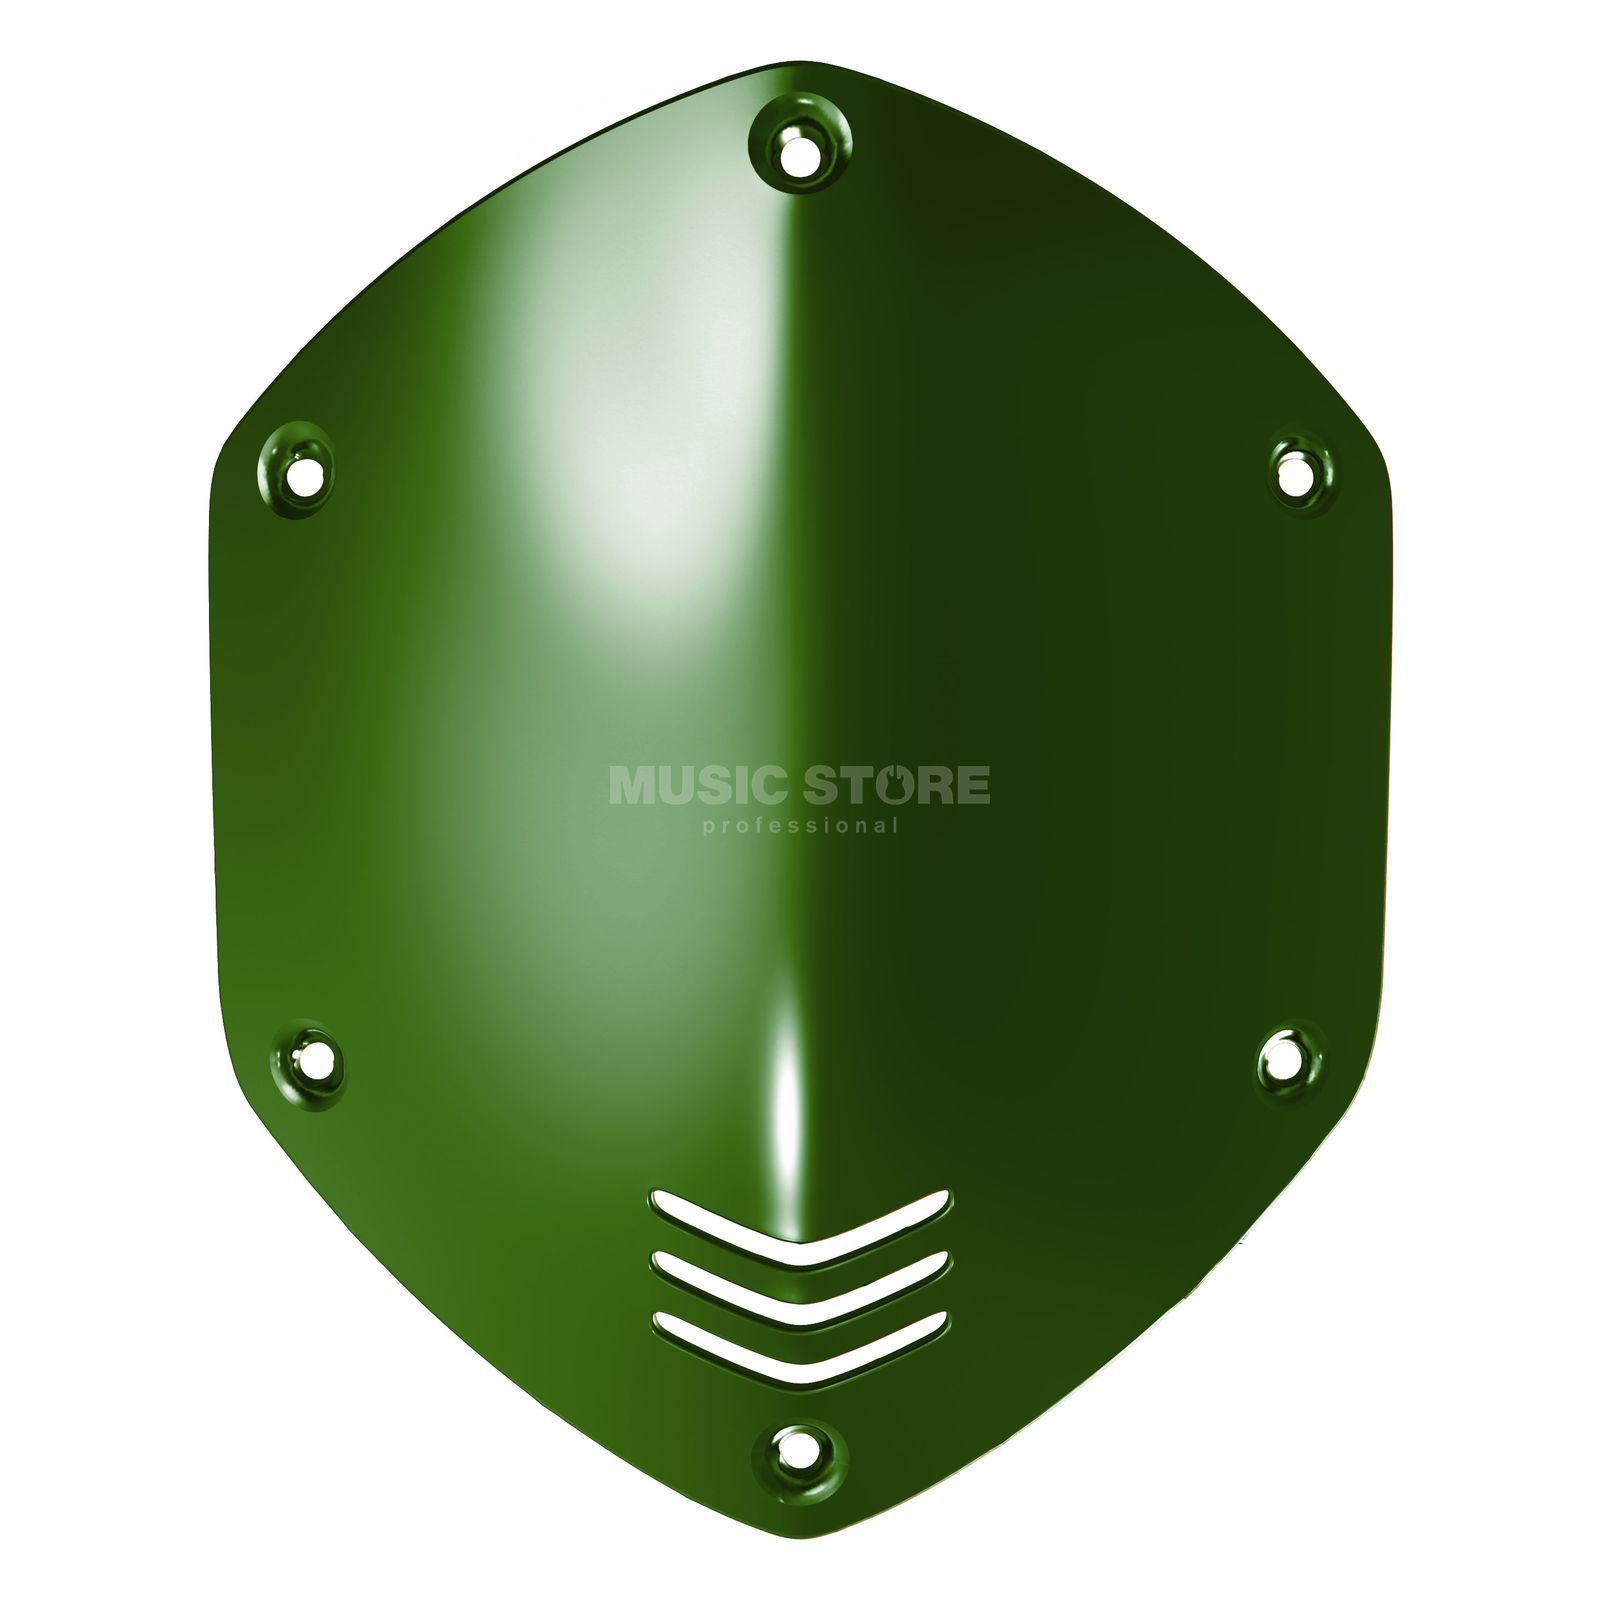 V-Moda Shield Kit M-100/LP2 (Over-Ear) hawk green Imagem do produto